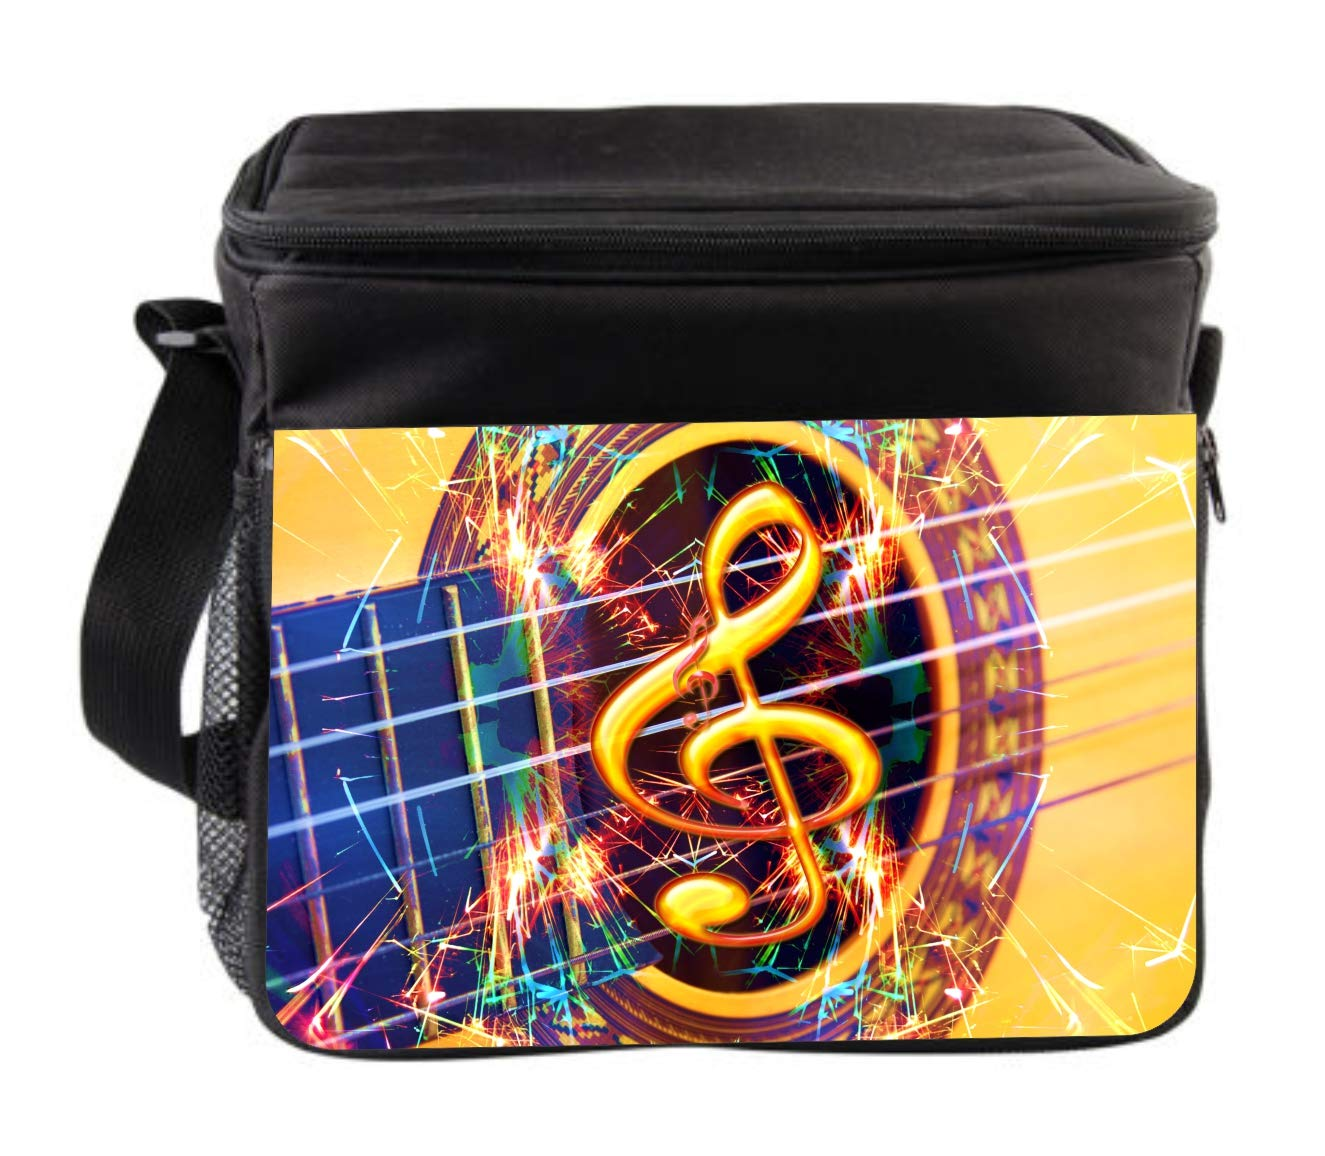 Rosie Parker Inc. Music Clef Guitar Design Cross Body Thermal Cooler Bag for Travel by Rosie Parker Inc.